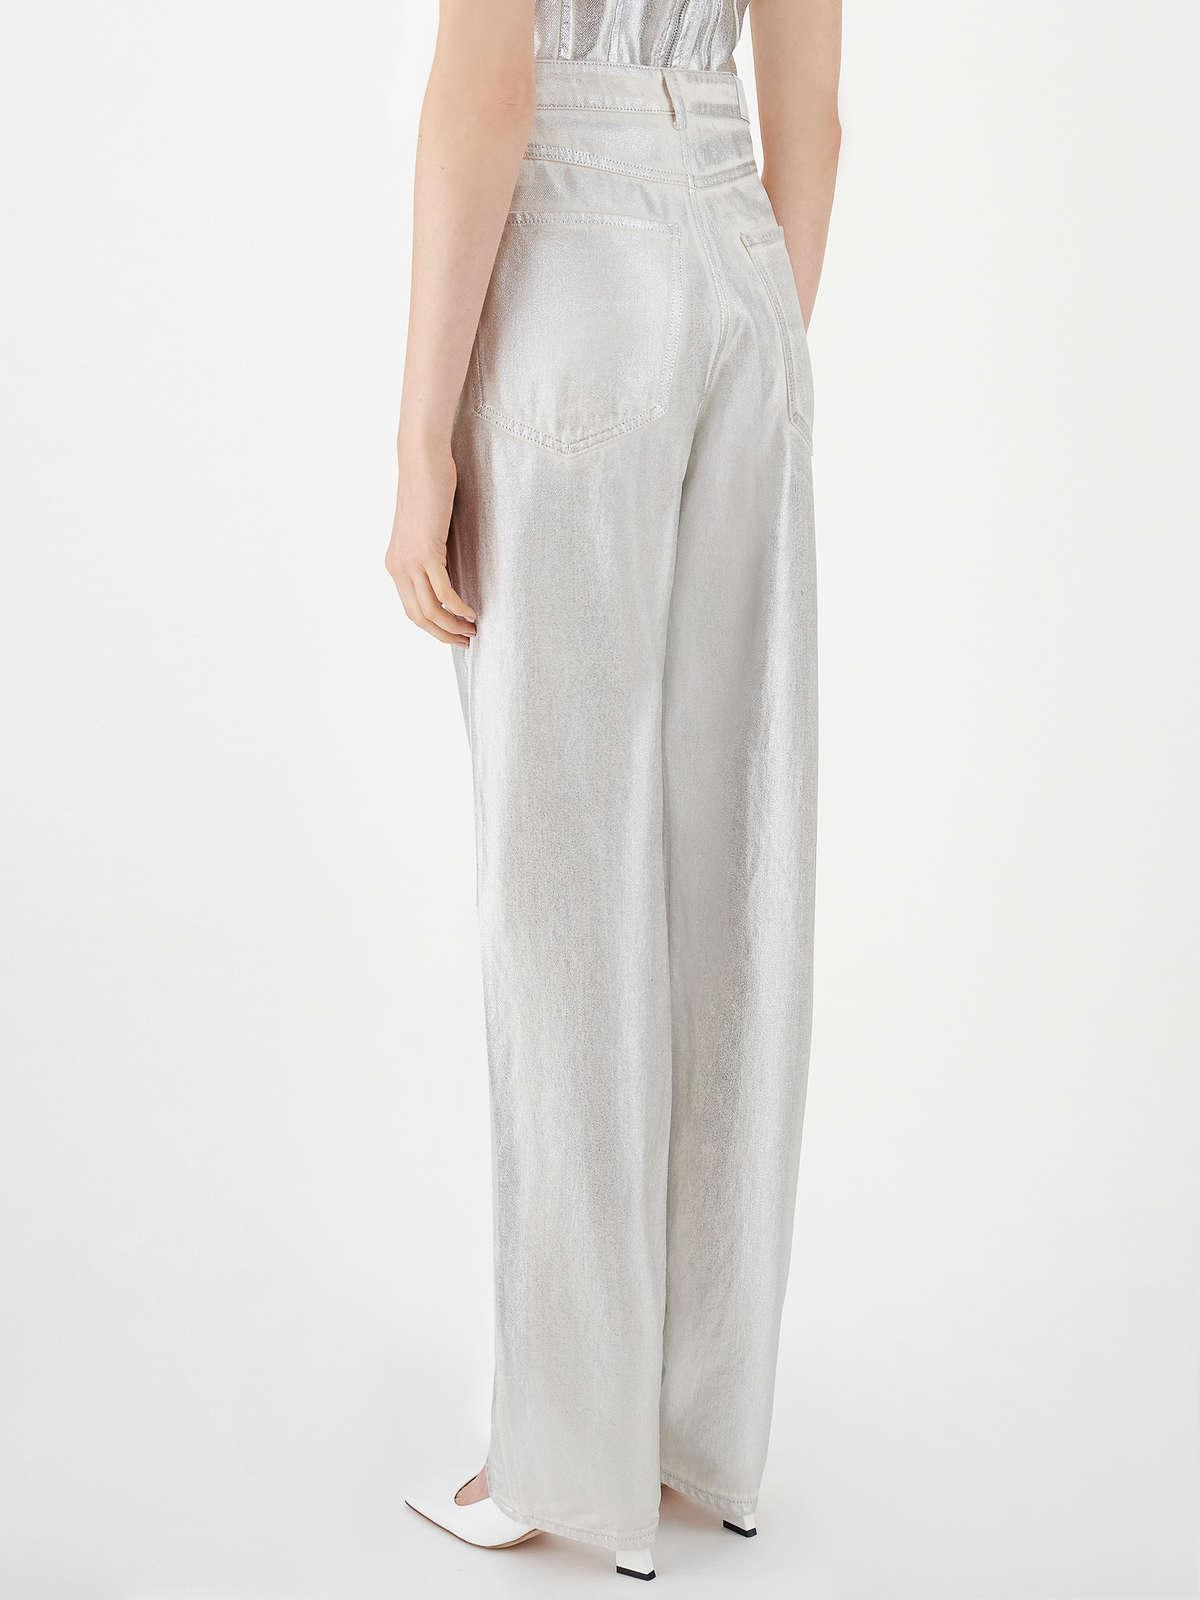 Womens Max Mara Trousers And Jeans | 5-Pocket Jeans Silver